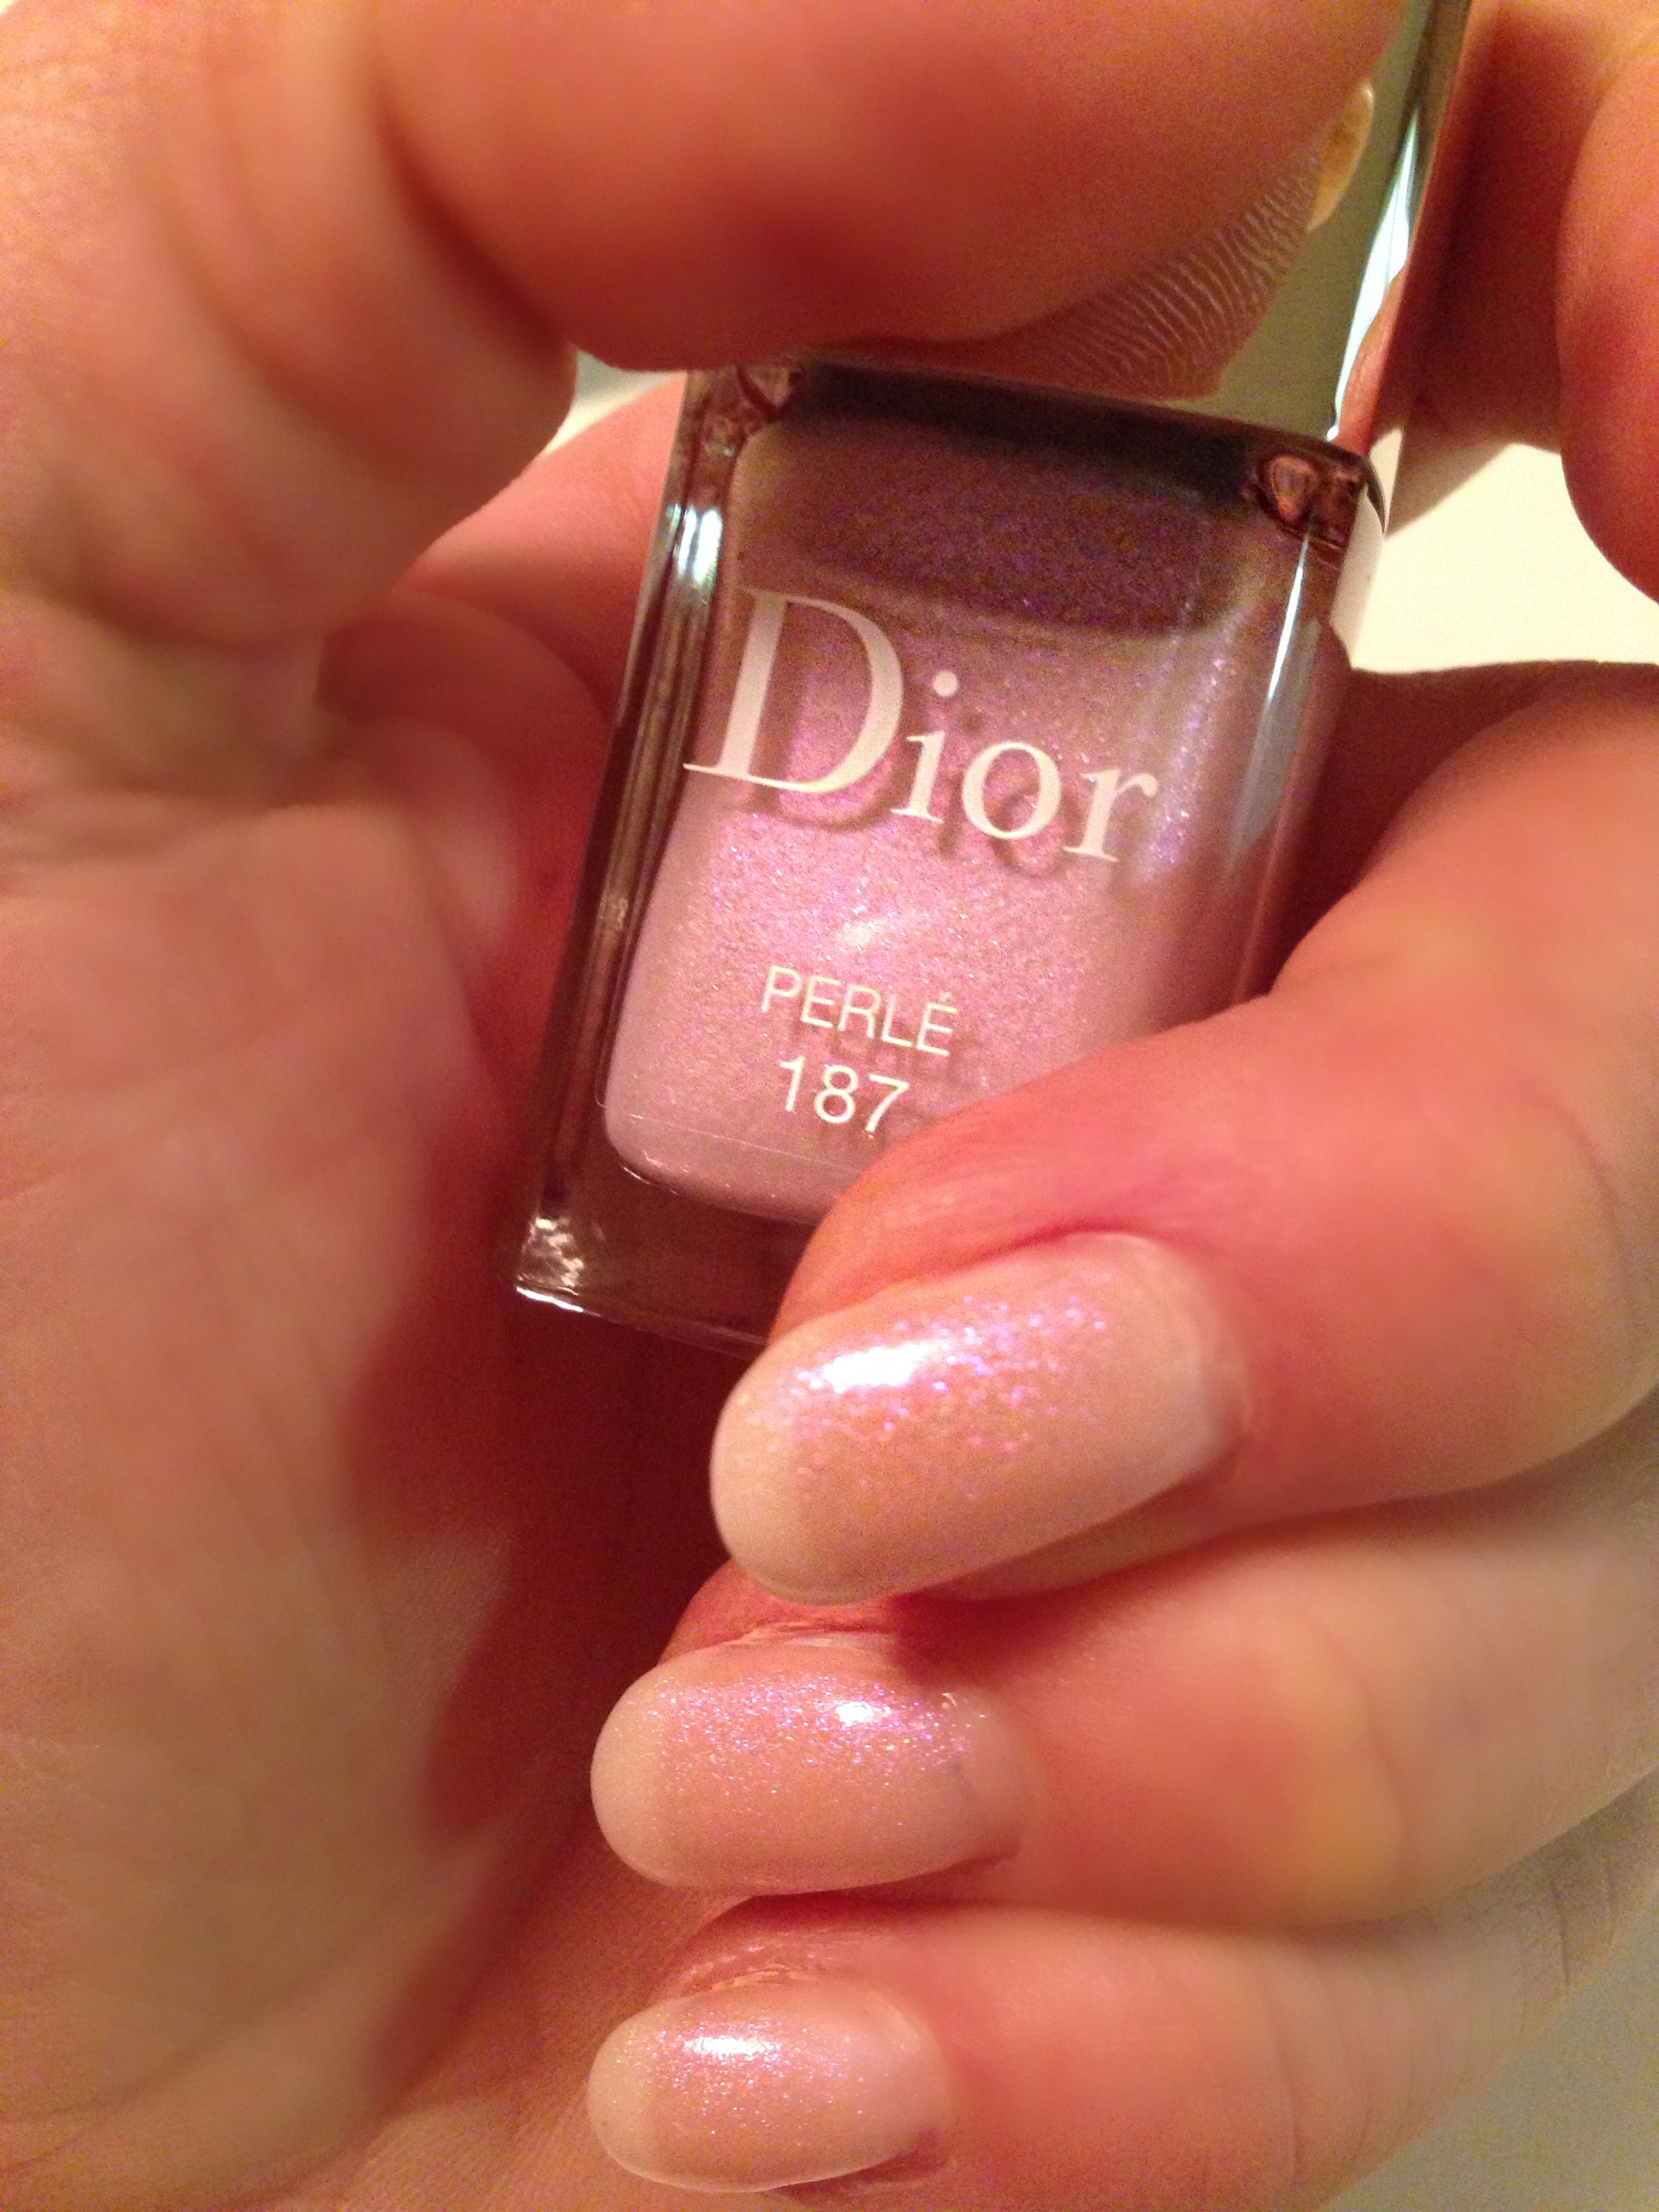 Dior Vernis Perle 187 Nagellack- Trianon Collection Spring 2014 ...